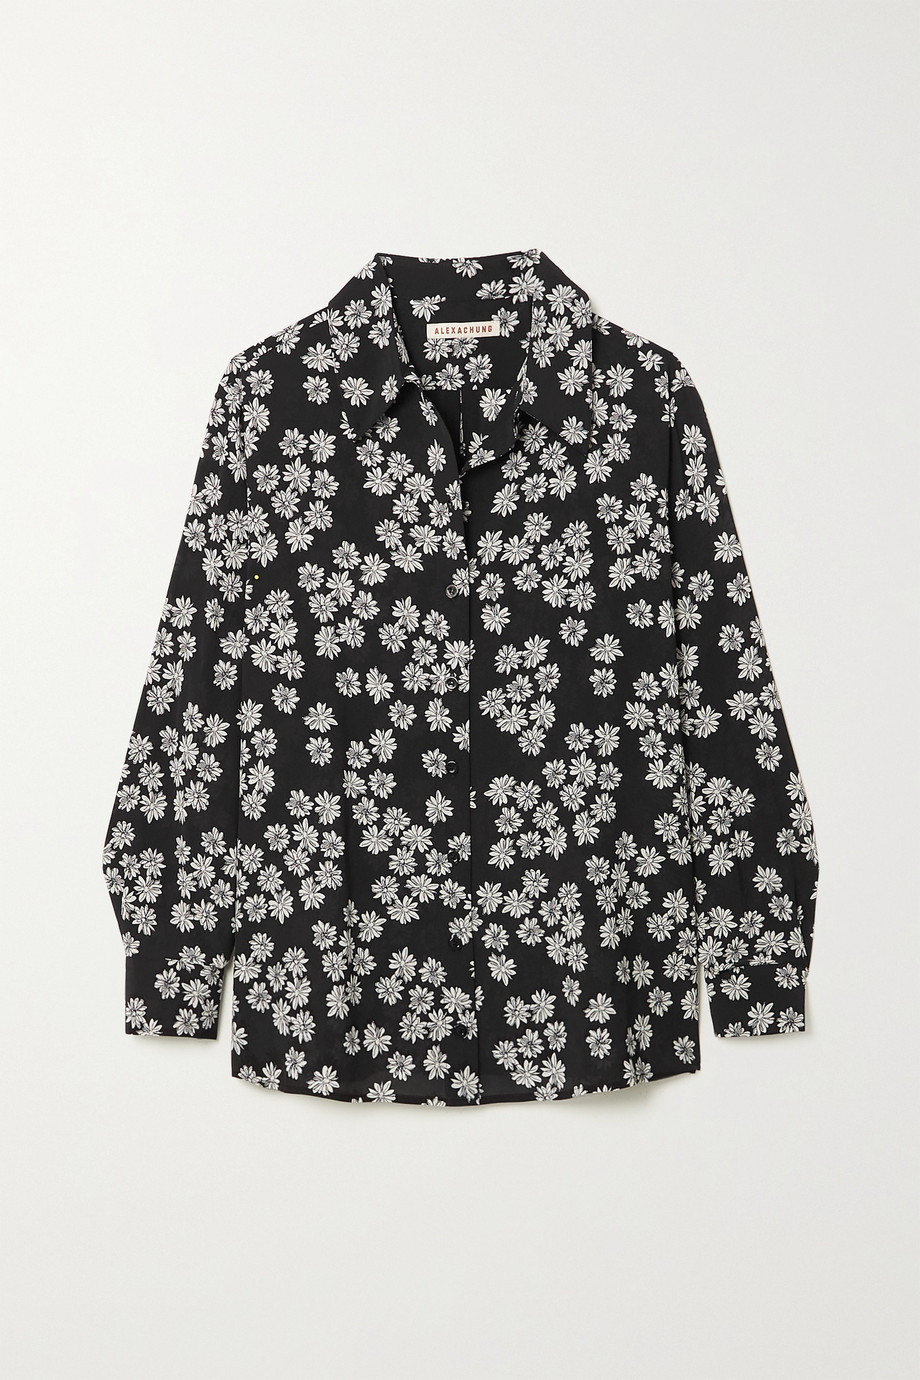 ALEXACHUNG After Hours floral-print crepe shirt